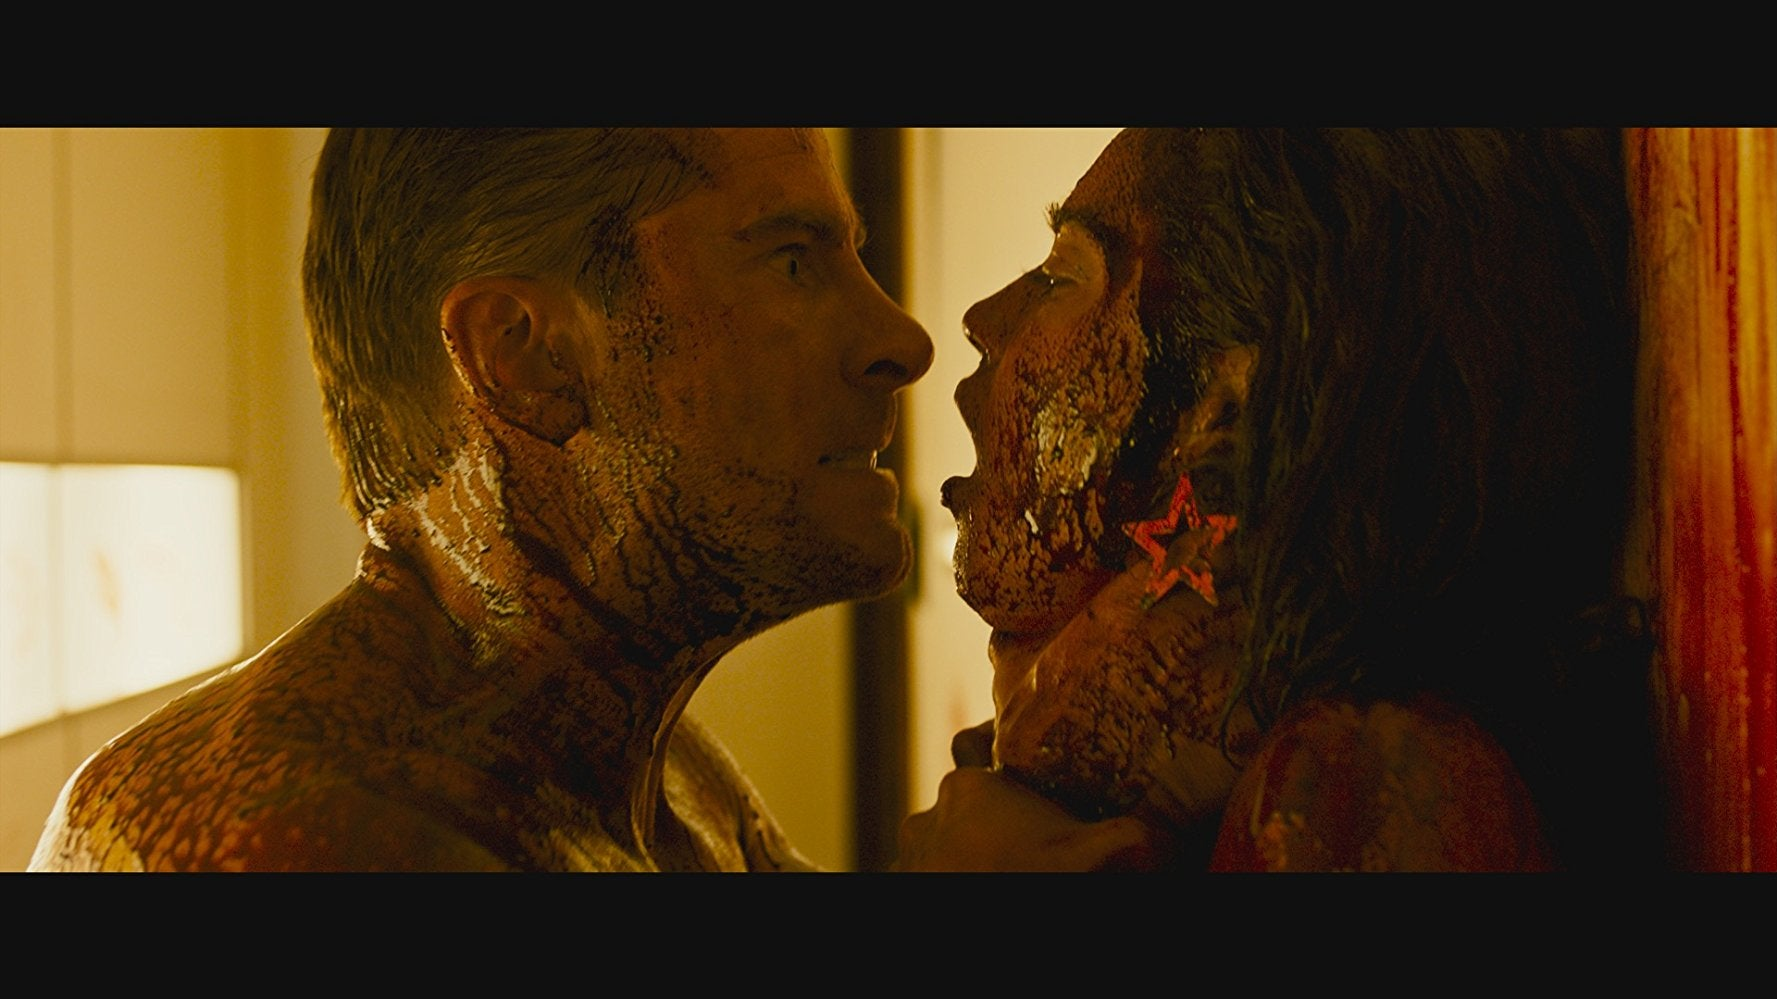 Kevin Janssens and Matilda Lutz in Revenge. Janssens grips Lutz by the throat and stares at her. They are both covered in blood.